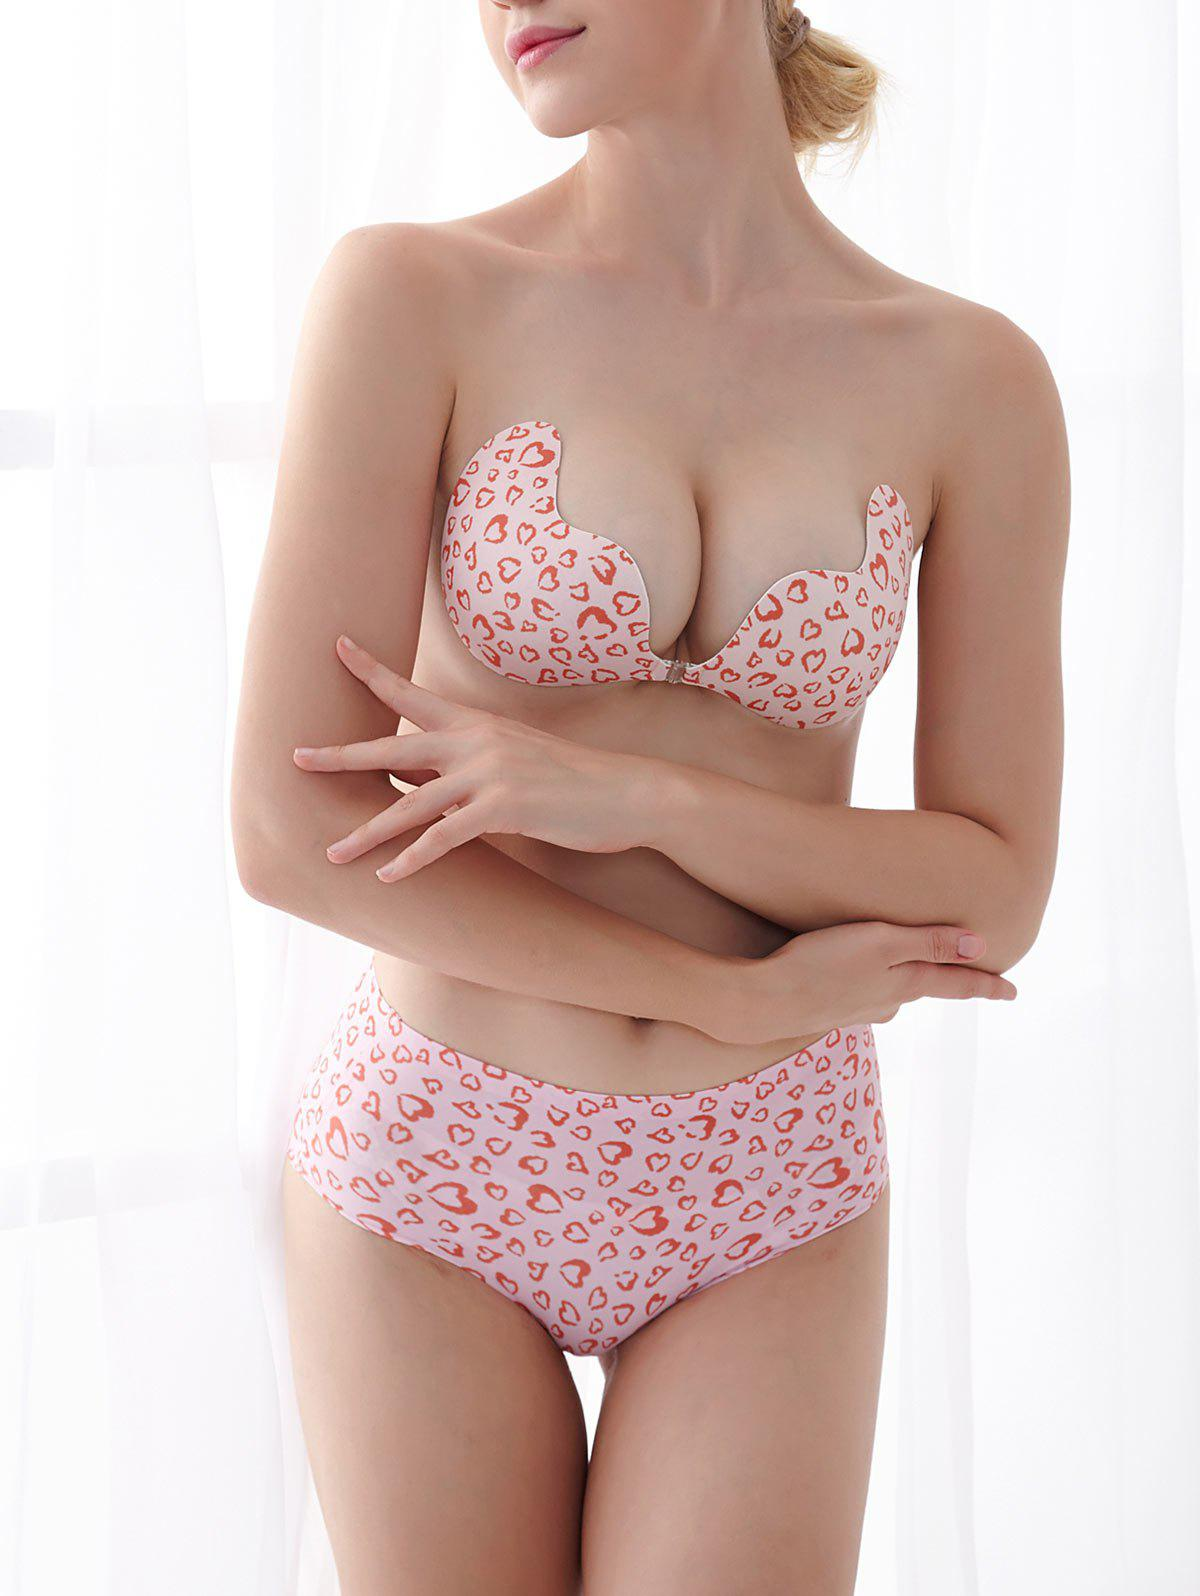 Pasties Strapless Sticky Bra - RED LEOPARD PATTERN CUP B